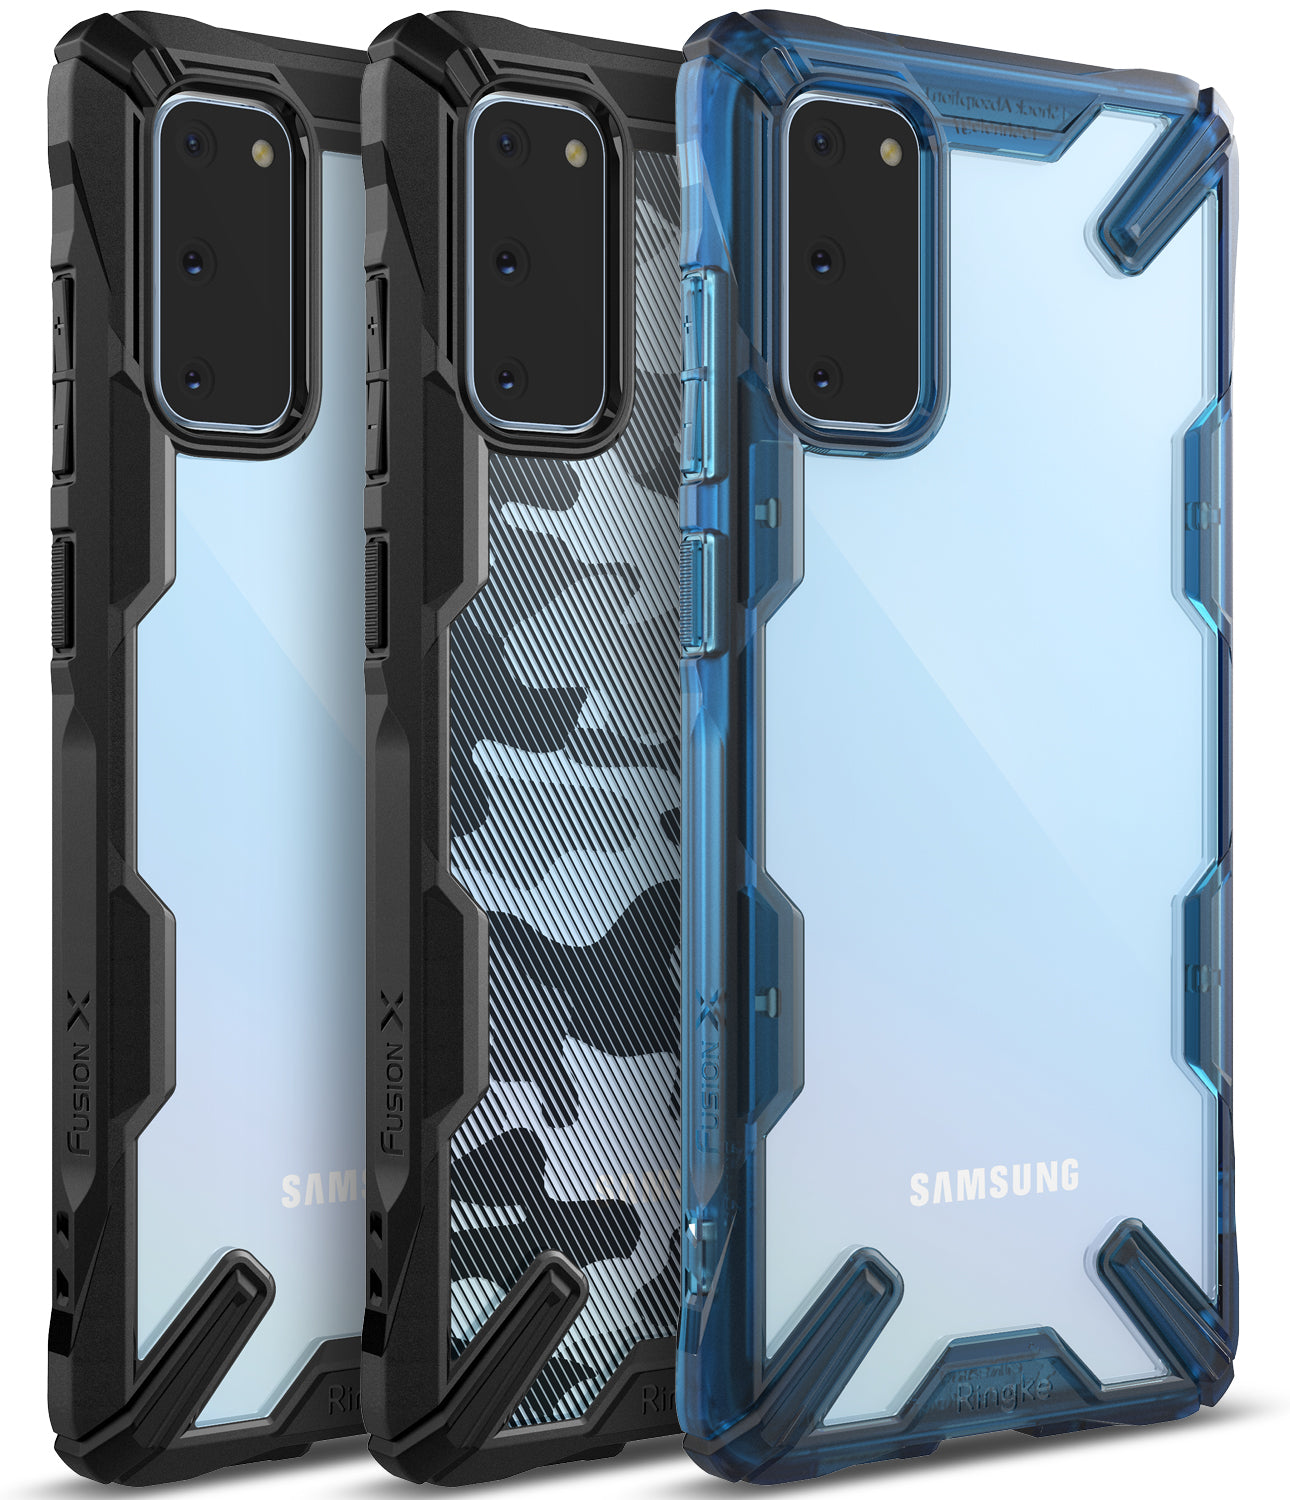 Ringke Galaxy S20 Fusion-X Case Black, Camo Black, Space Blue Colors